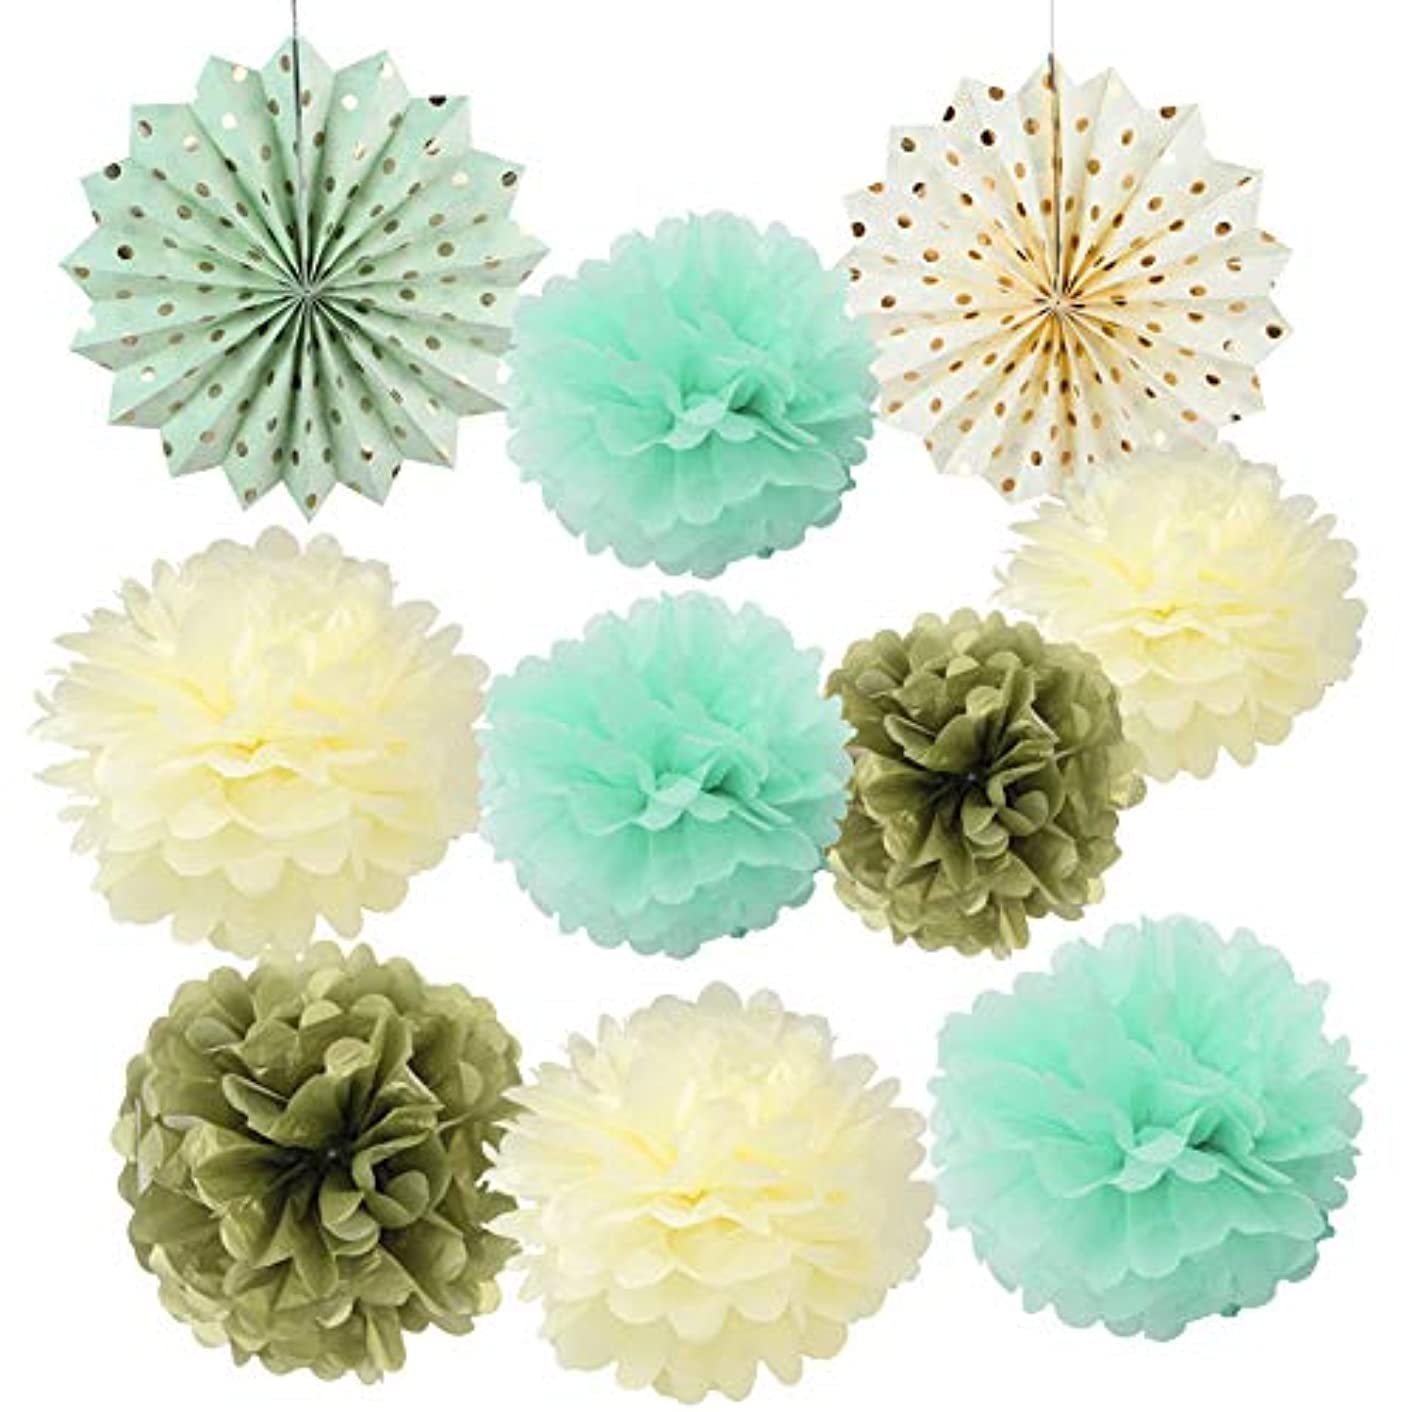 Mint Cream Gold Tissue Paper Pom Poms Flowers Gold Dot Paper Fans Collection Home Decoration for Wedding Decor - Birthday Celebration - Wedding Party and Outdoor Decoration 10pcs(8inch 10inch 12inch)